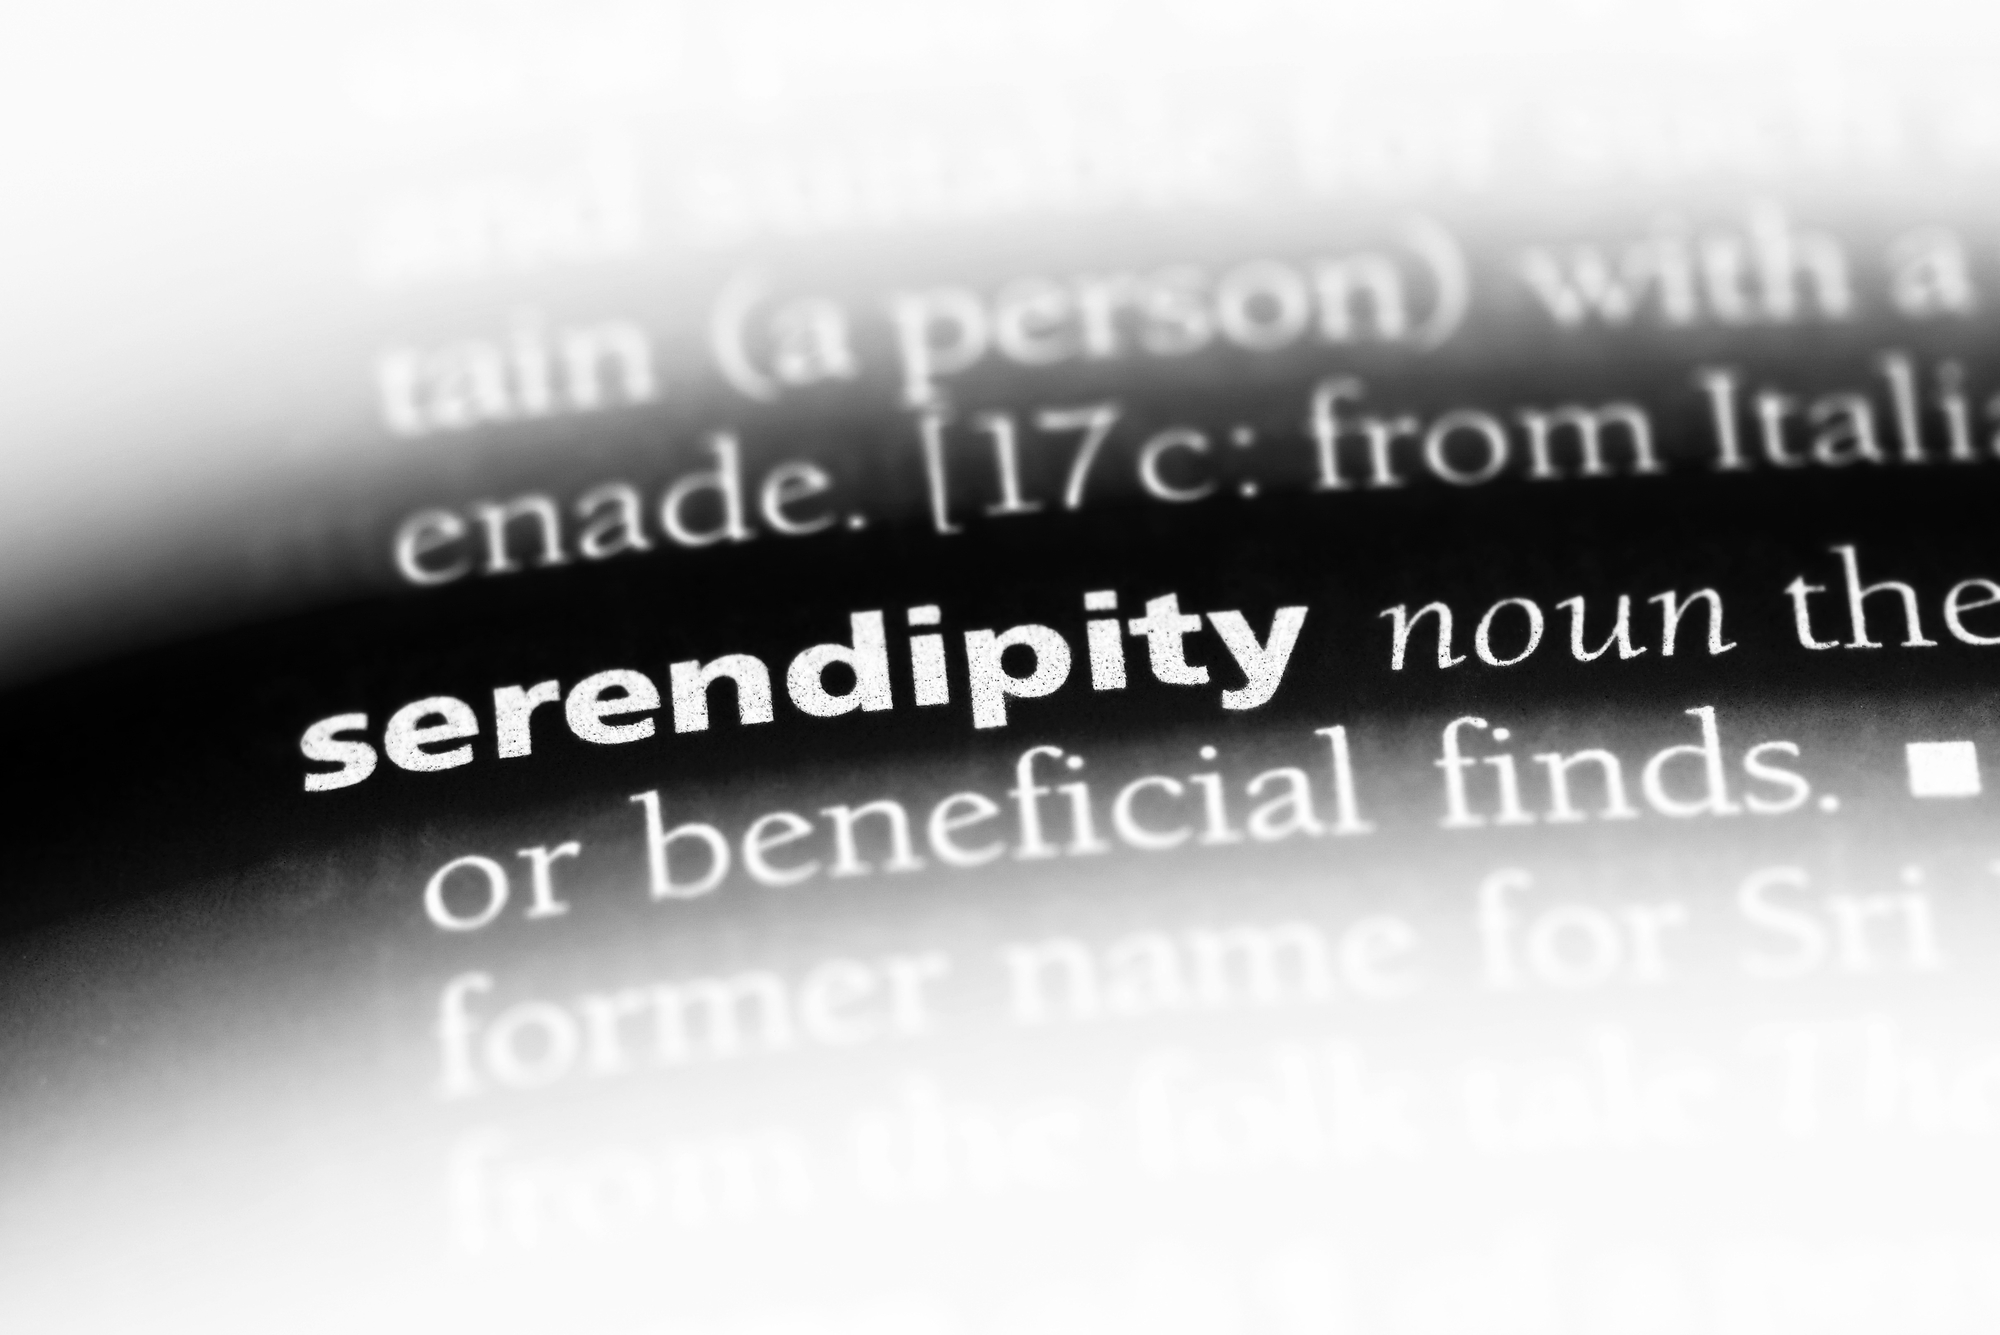 serendipity and business